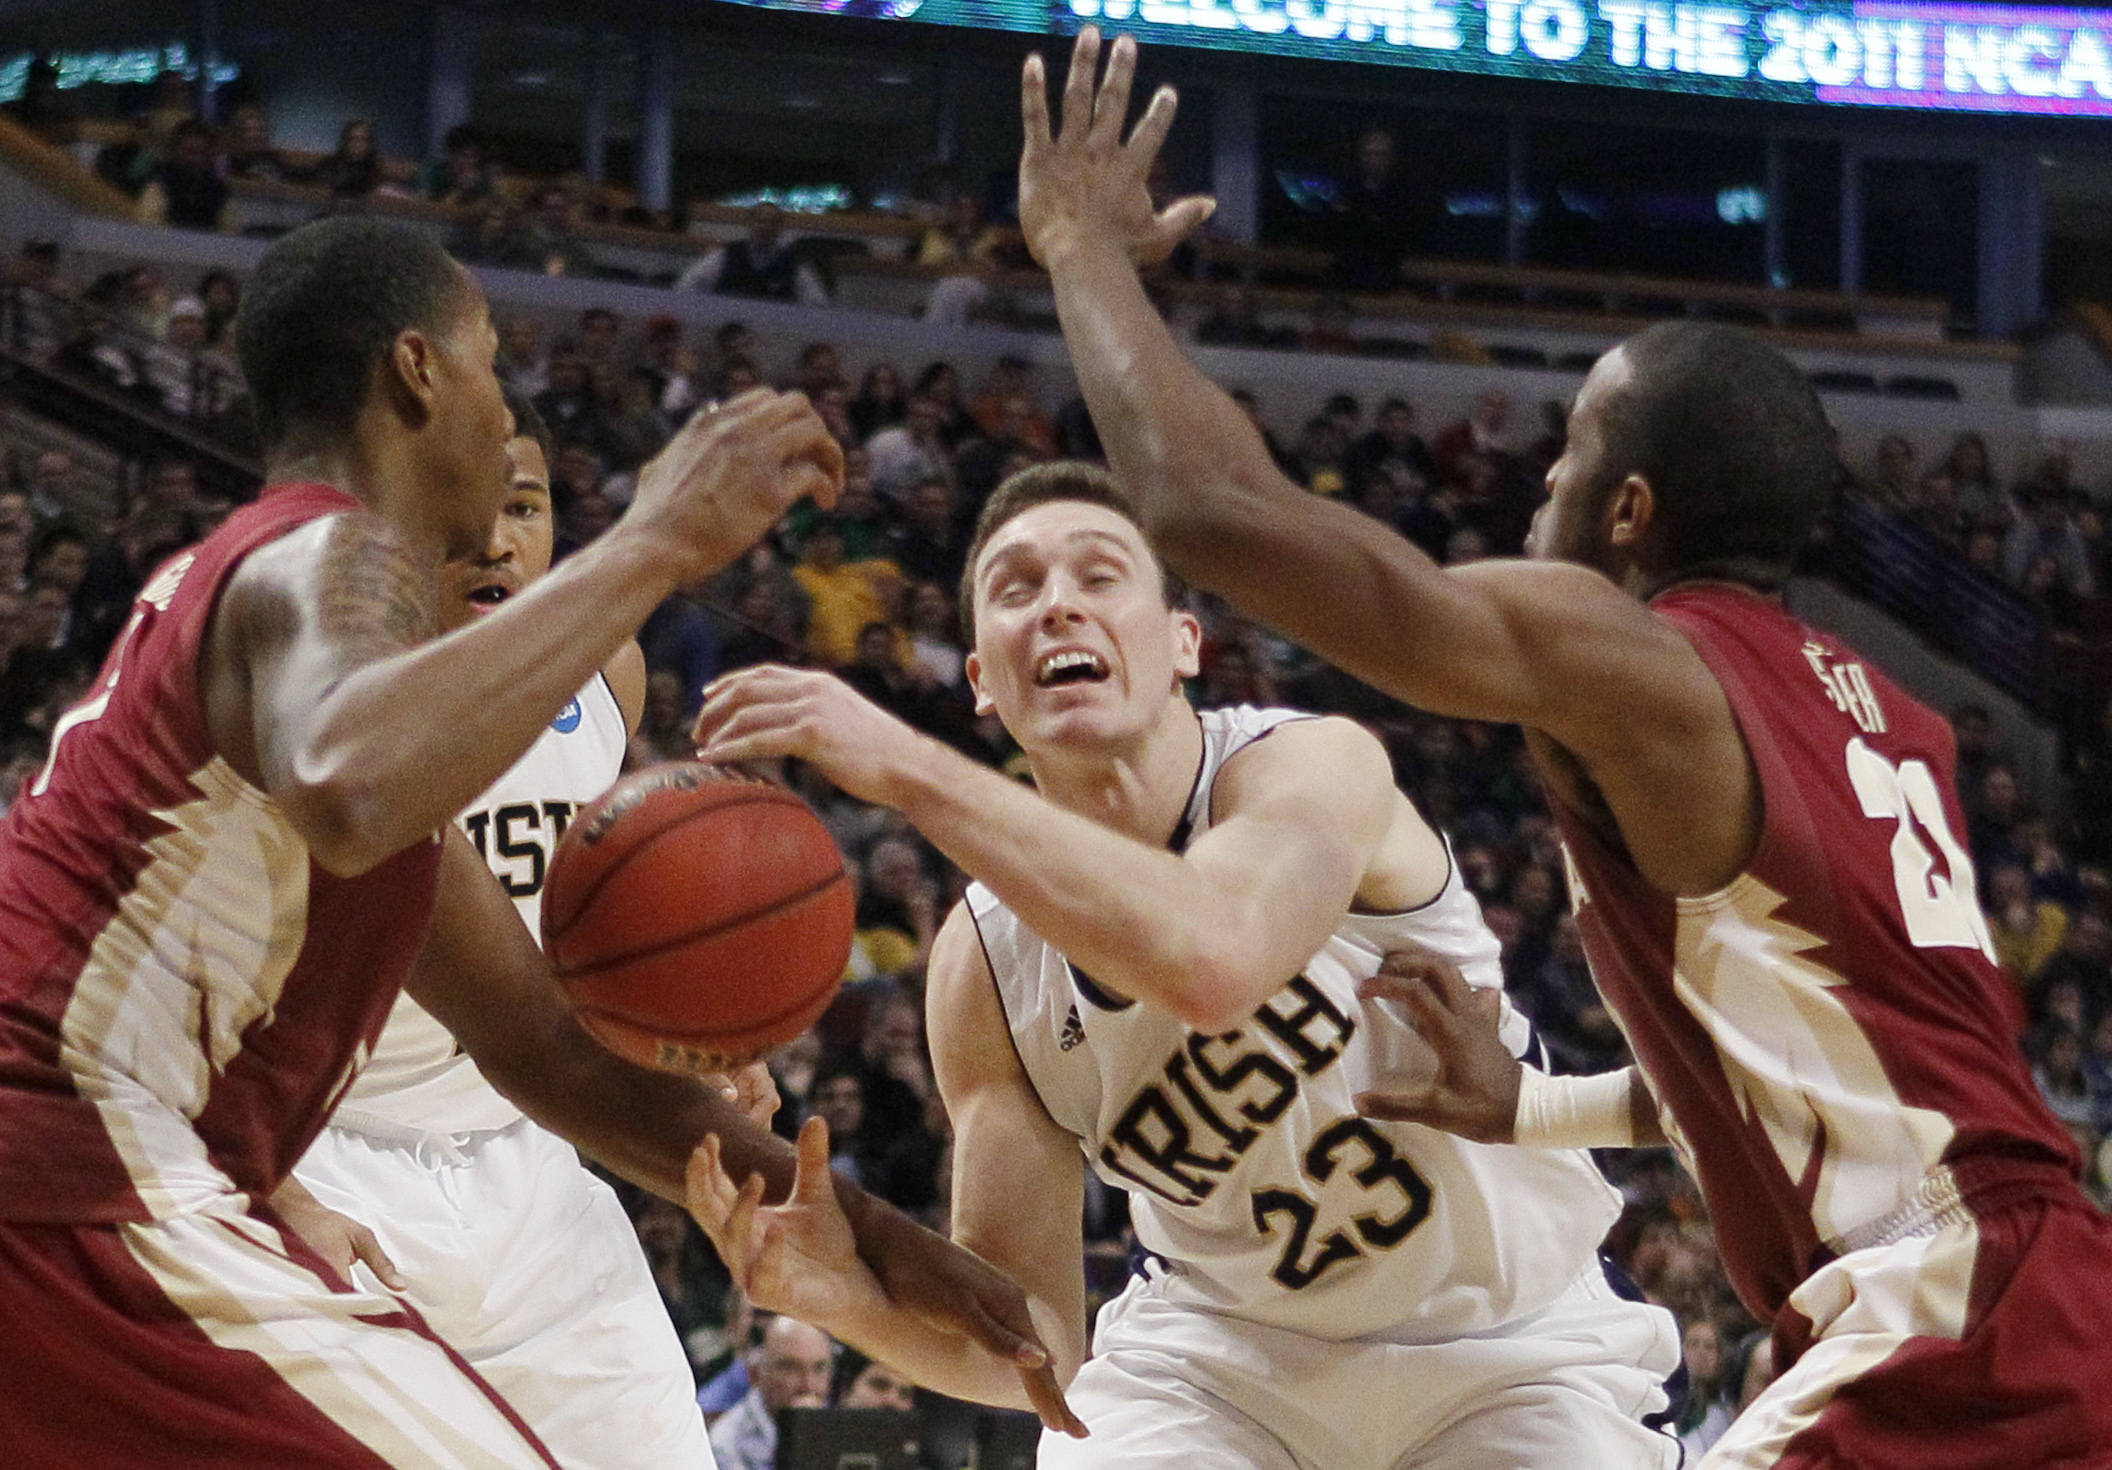 Notre Dame guard Ben Hansbrough (23) loses the control of the ball against Florida State forward/center Xavier Gibson, left, and guard Michael Snaer (21). (AP Photo/Charles Rex Arbogast)